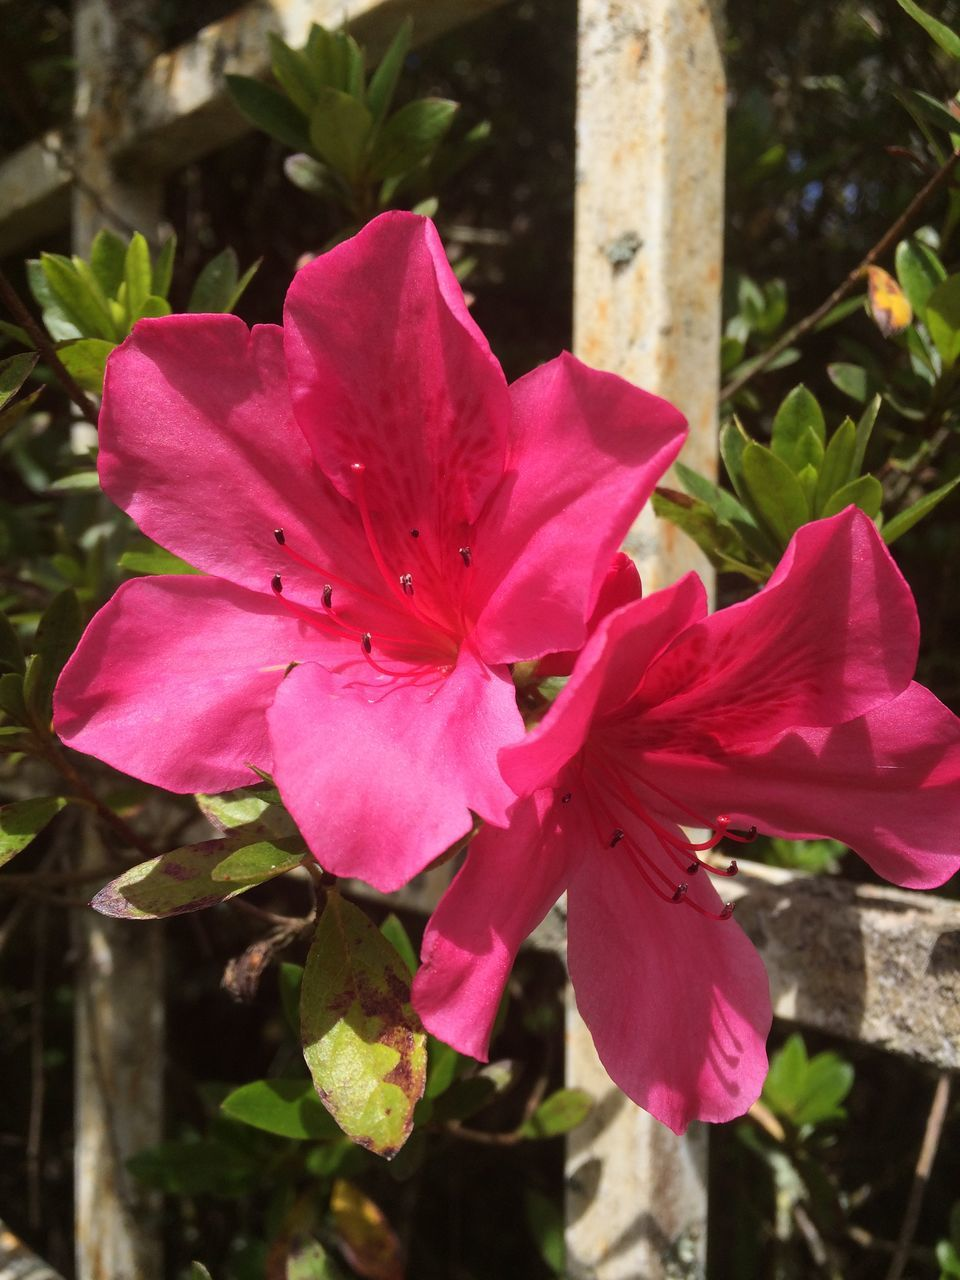 pink color, flower, petal, beauty in nature, fragility, nature, no people, close-up, outdoors, growth, day, plant, flower head, freshness, blooming, hibiscus, petunia, periwinkle